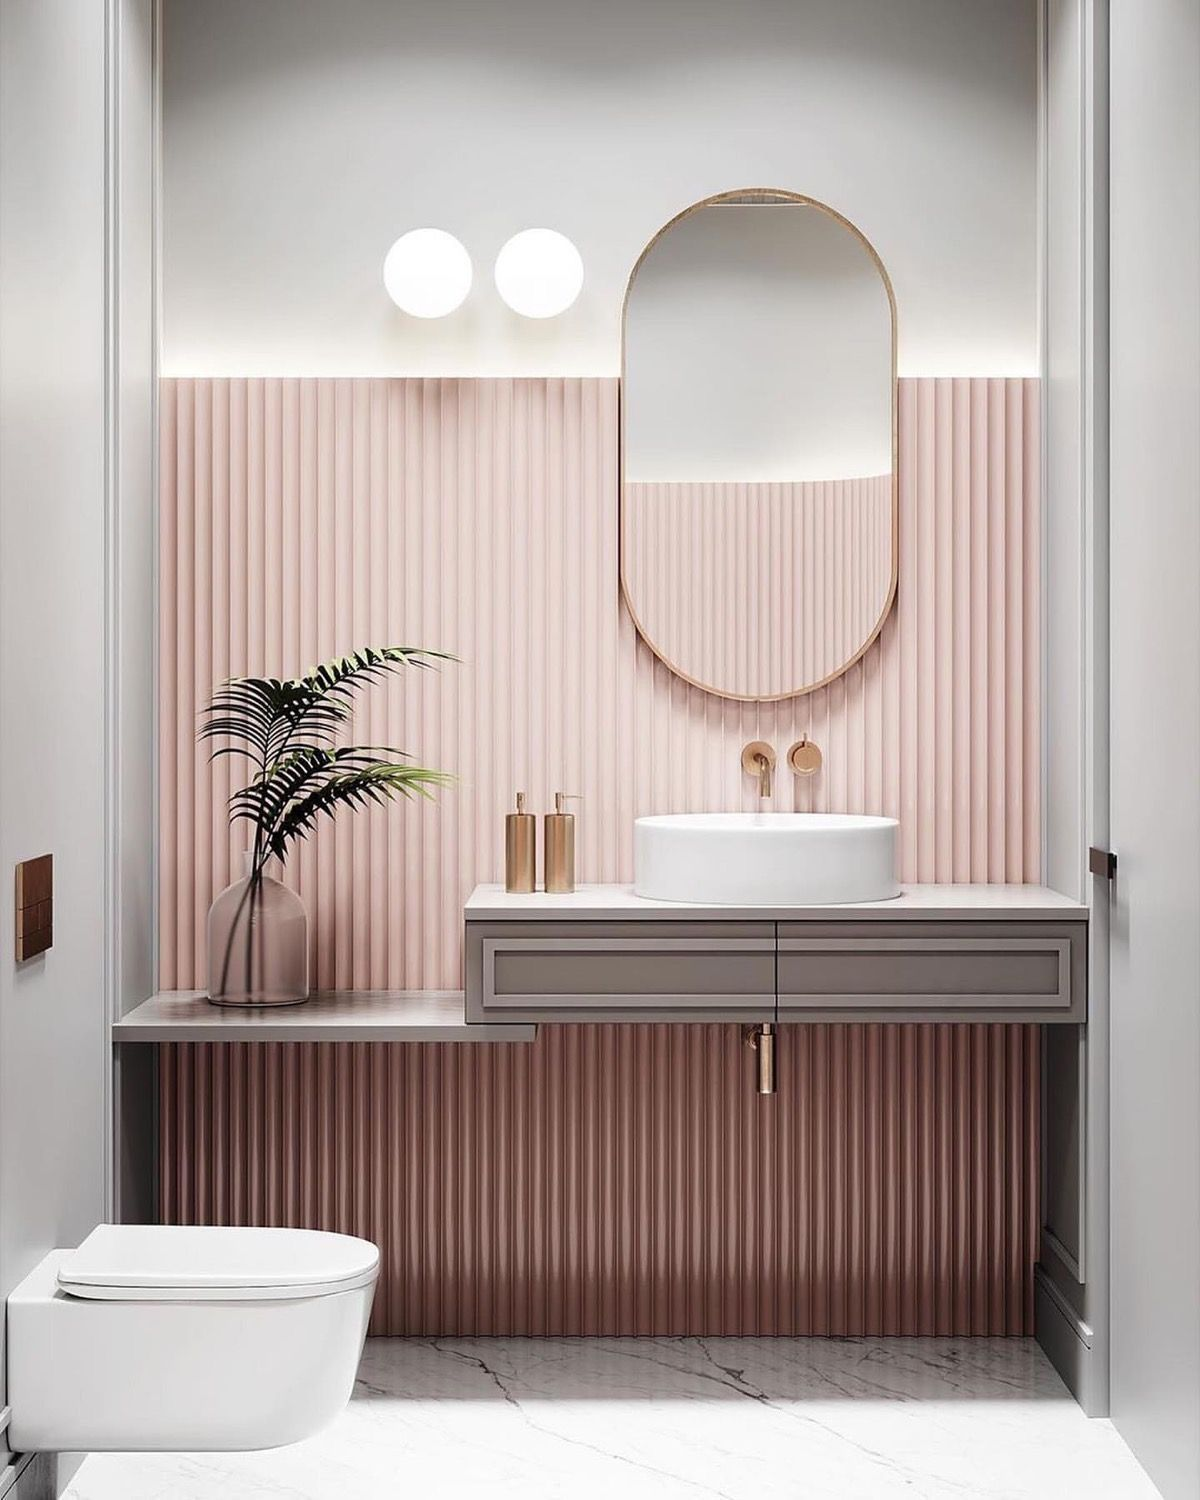 Photo of 51 Pink Bathrooms With Tips, Photos And Accessories To Help You Decorate Yours